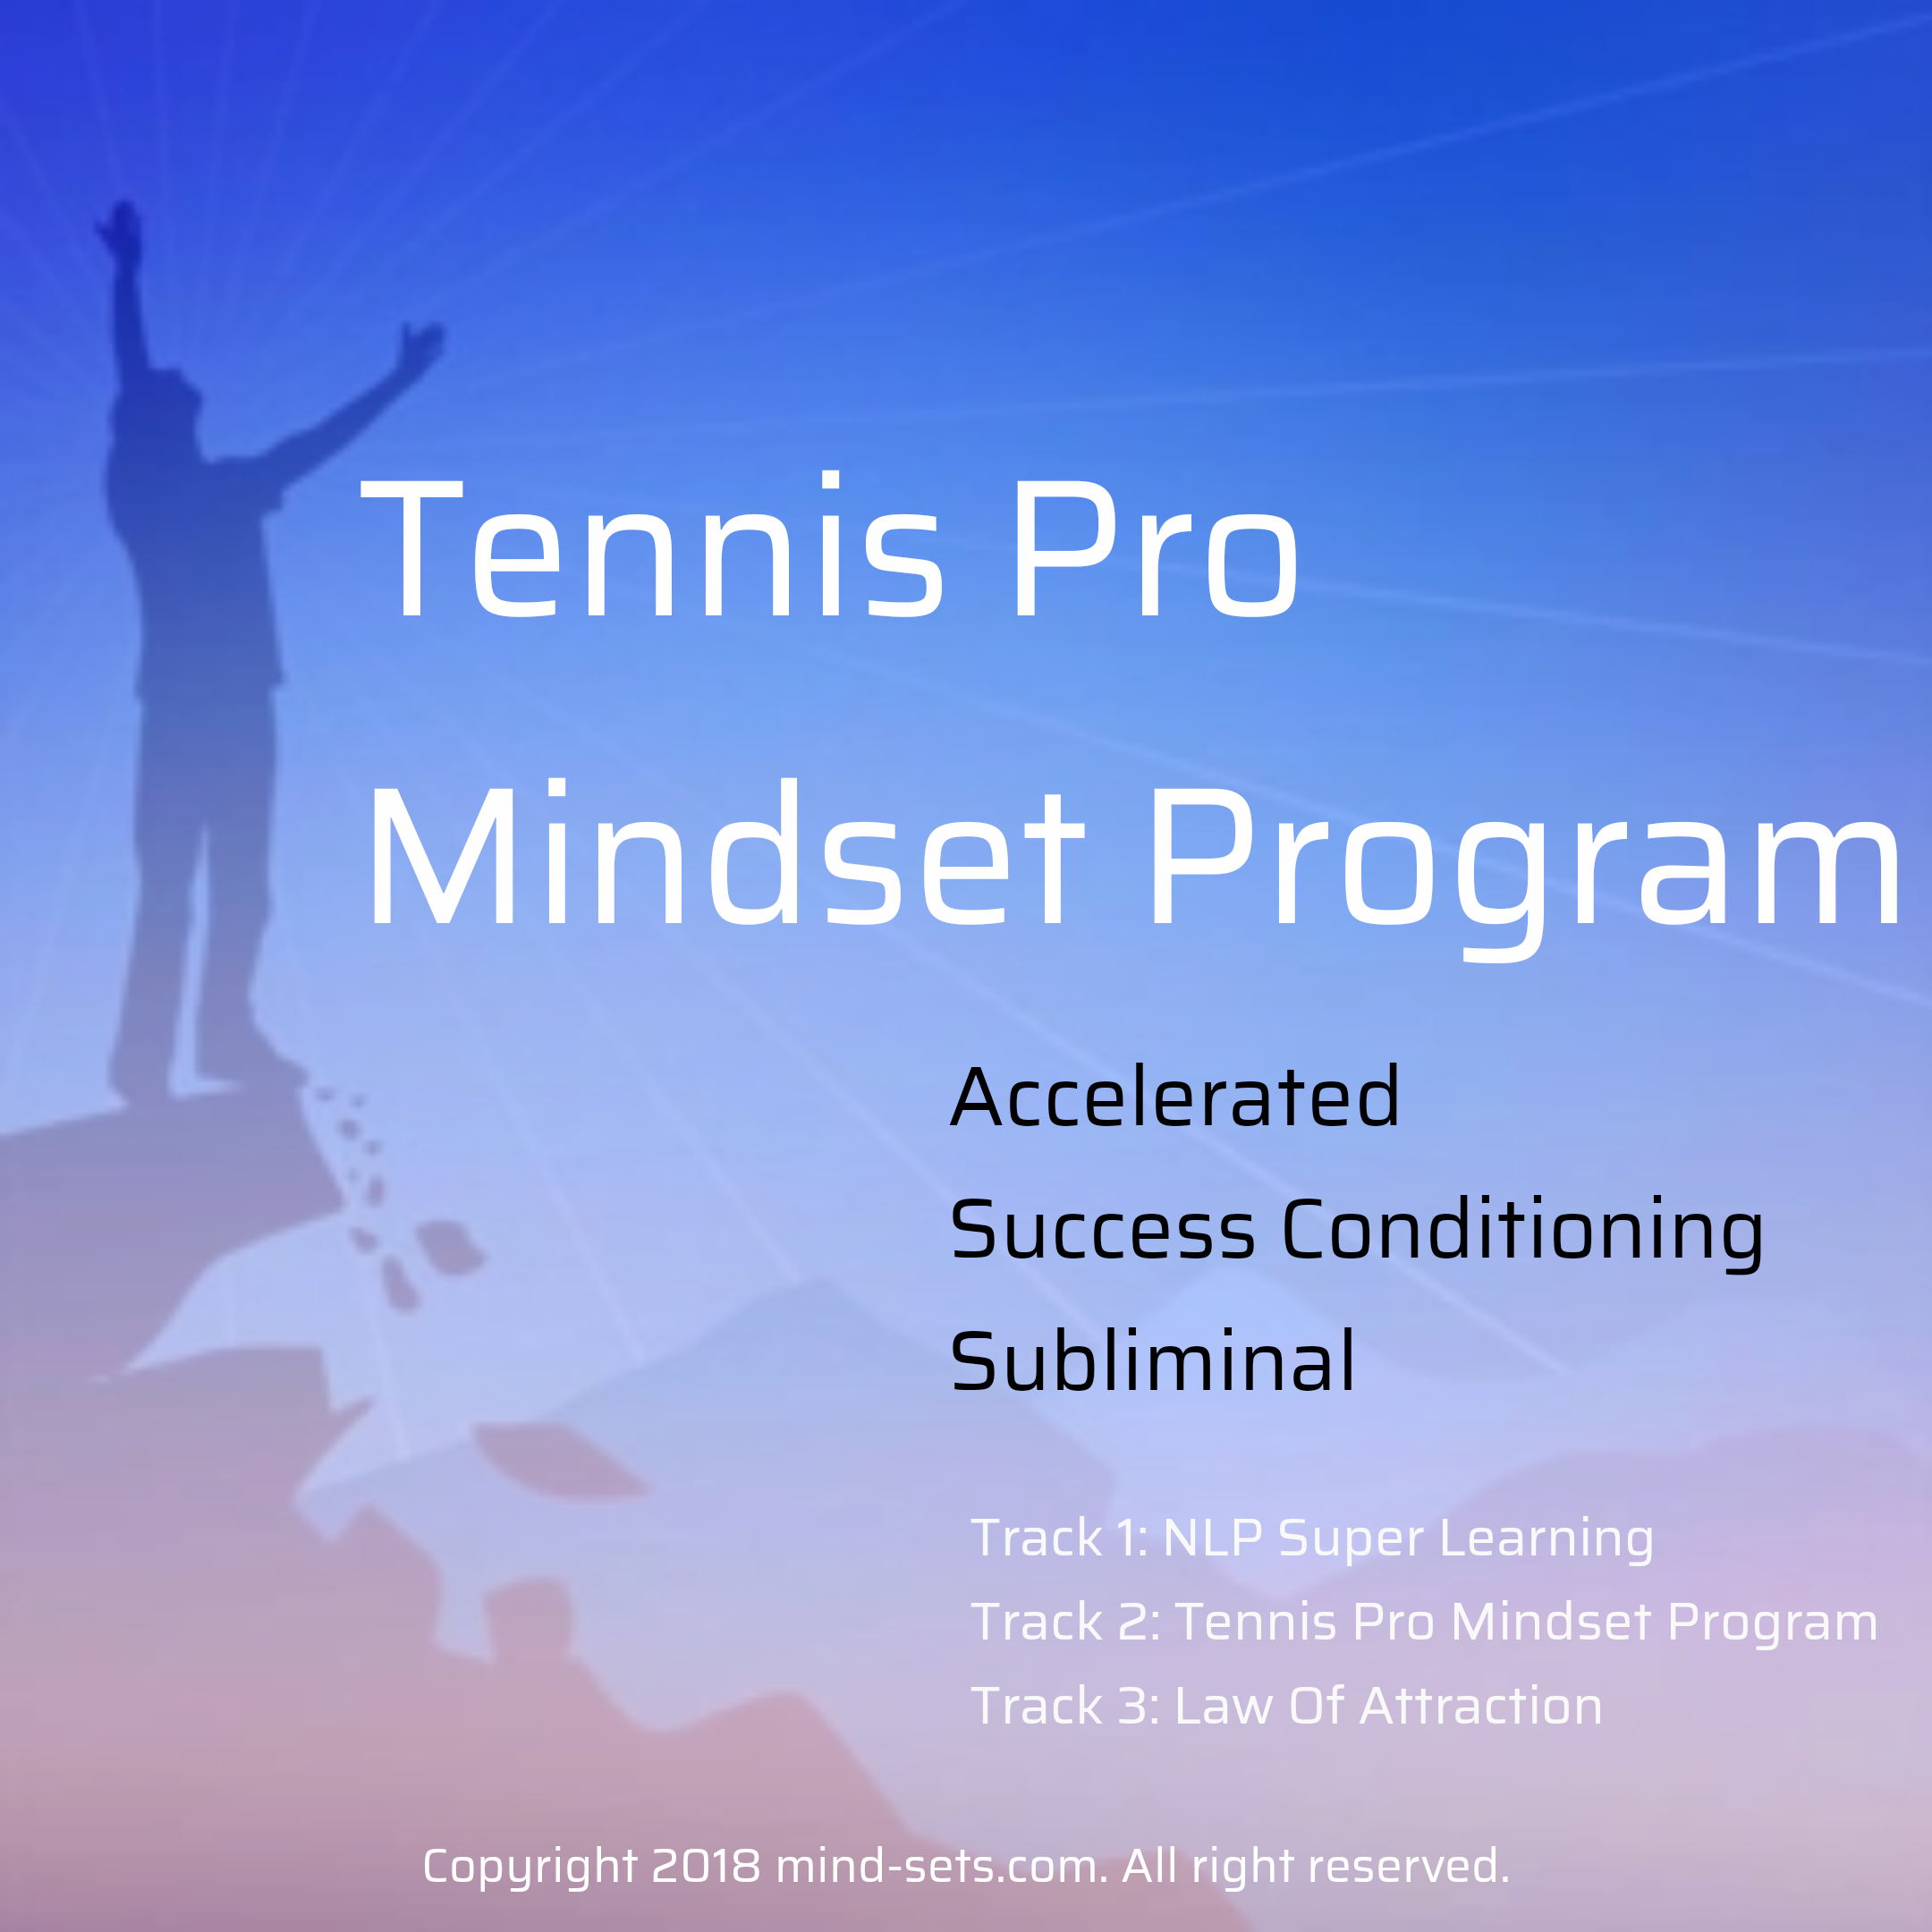 Tennis Pro Mindset Program